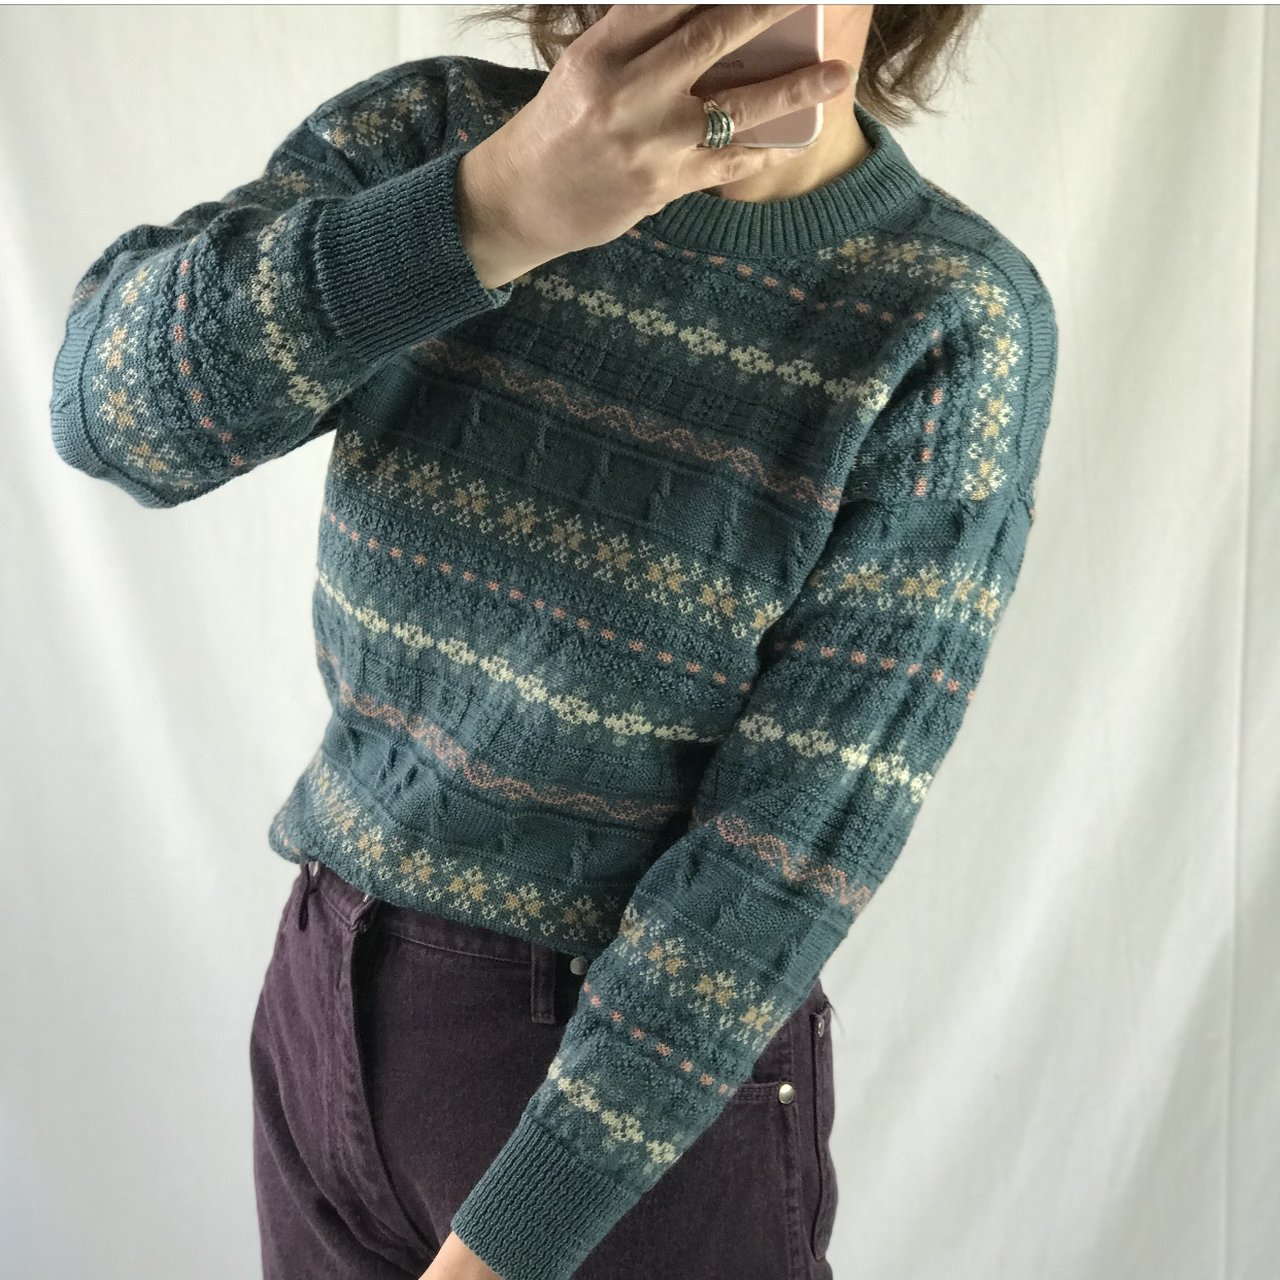 848b08f3 Shoptagr | Little Vintage Patterned Jumper In A Gorgeous Blue With ...